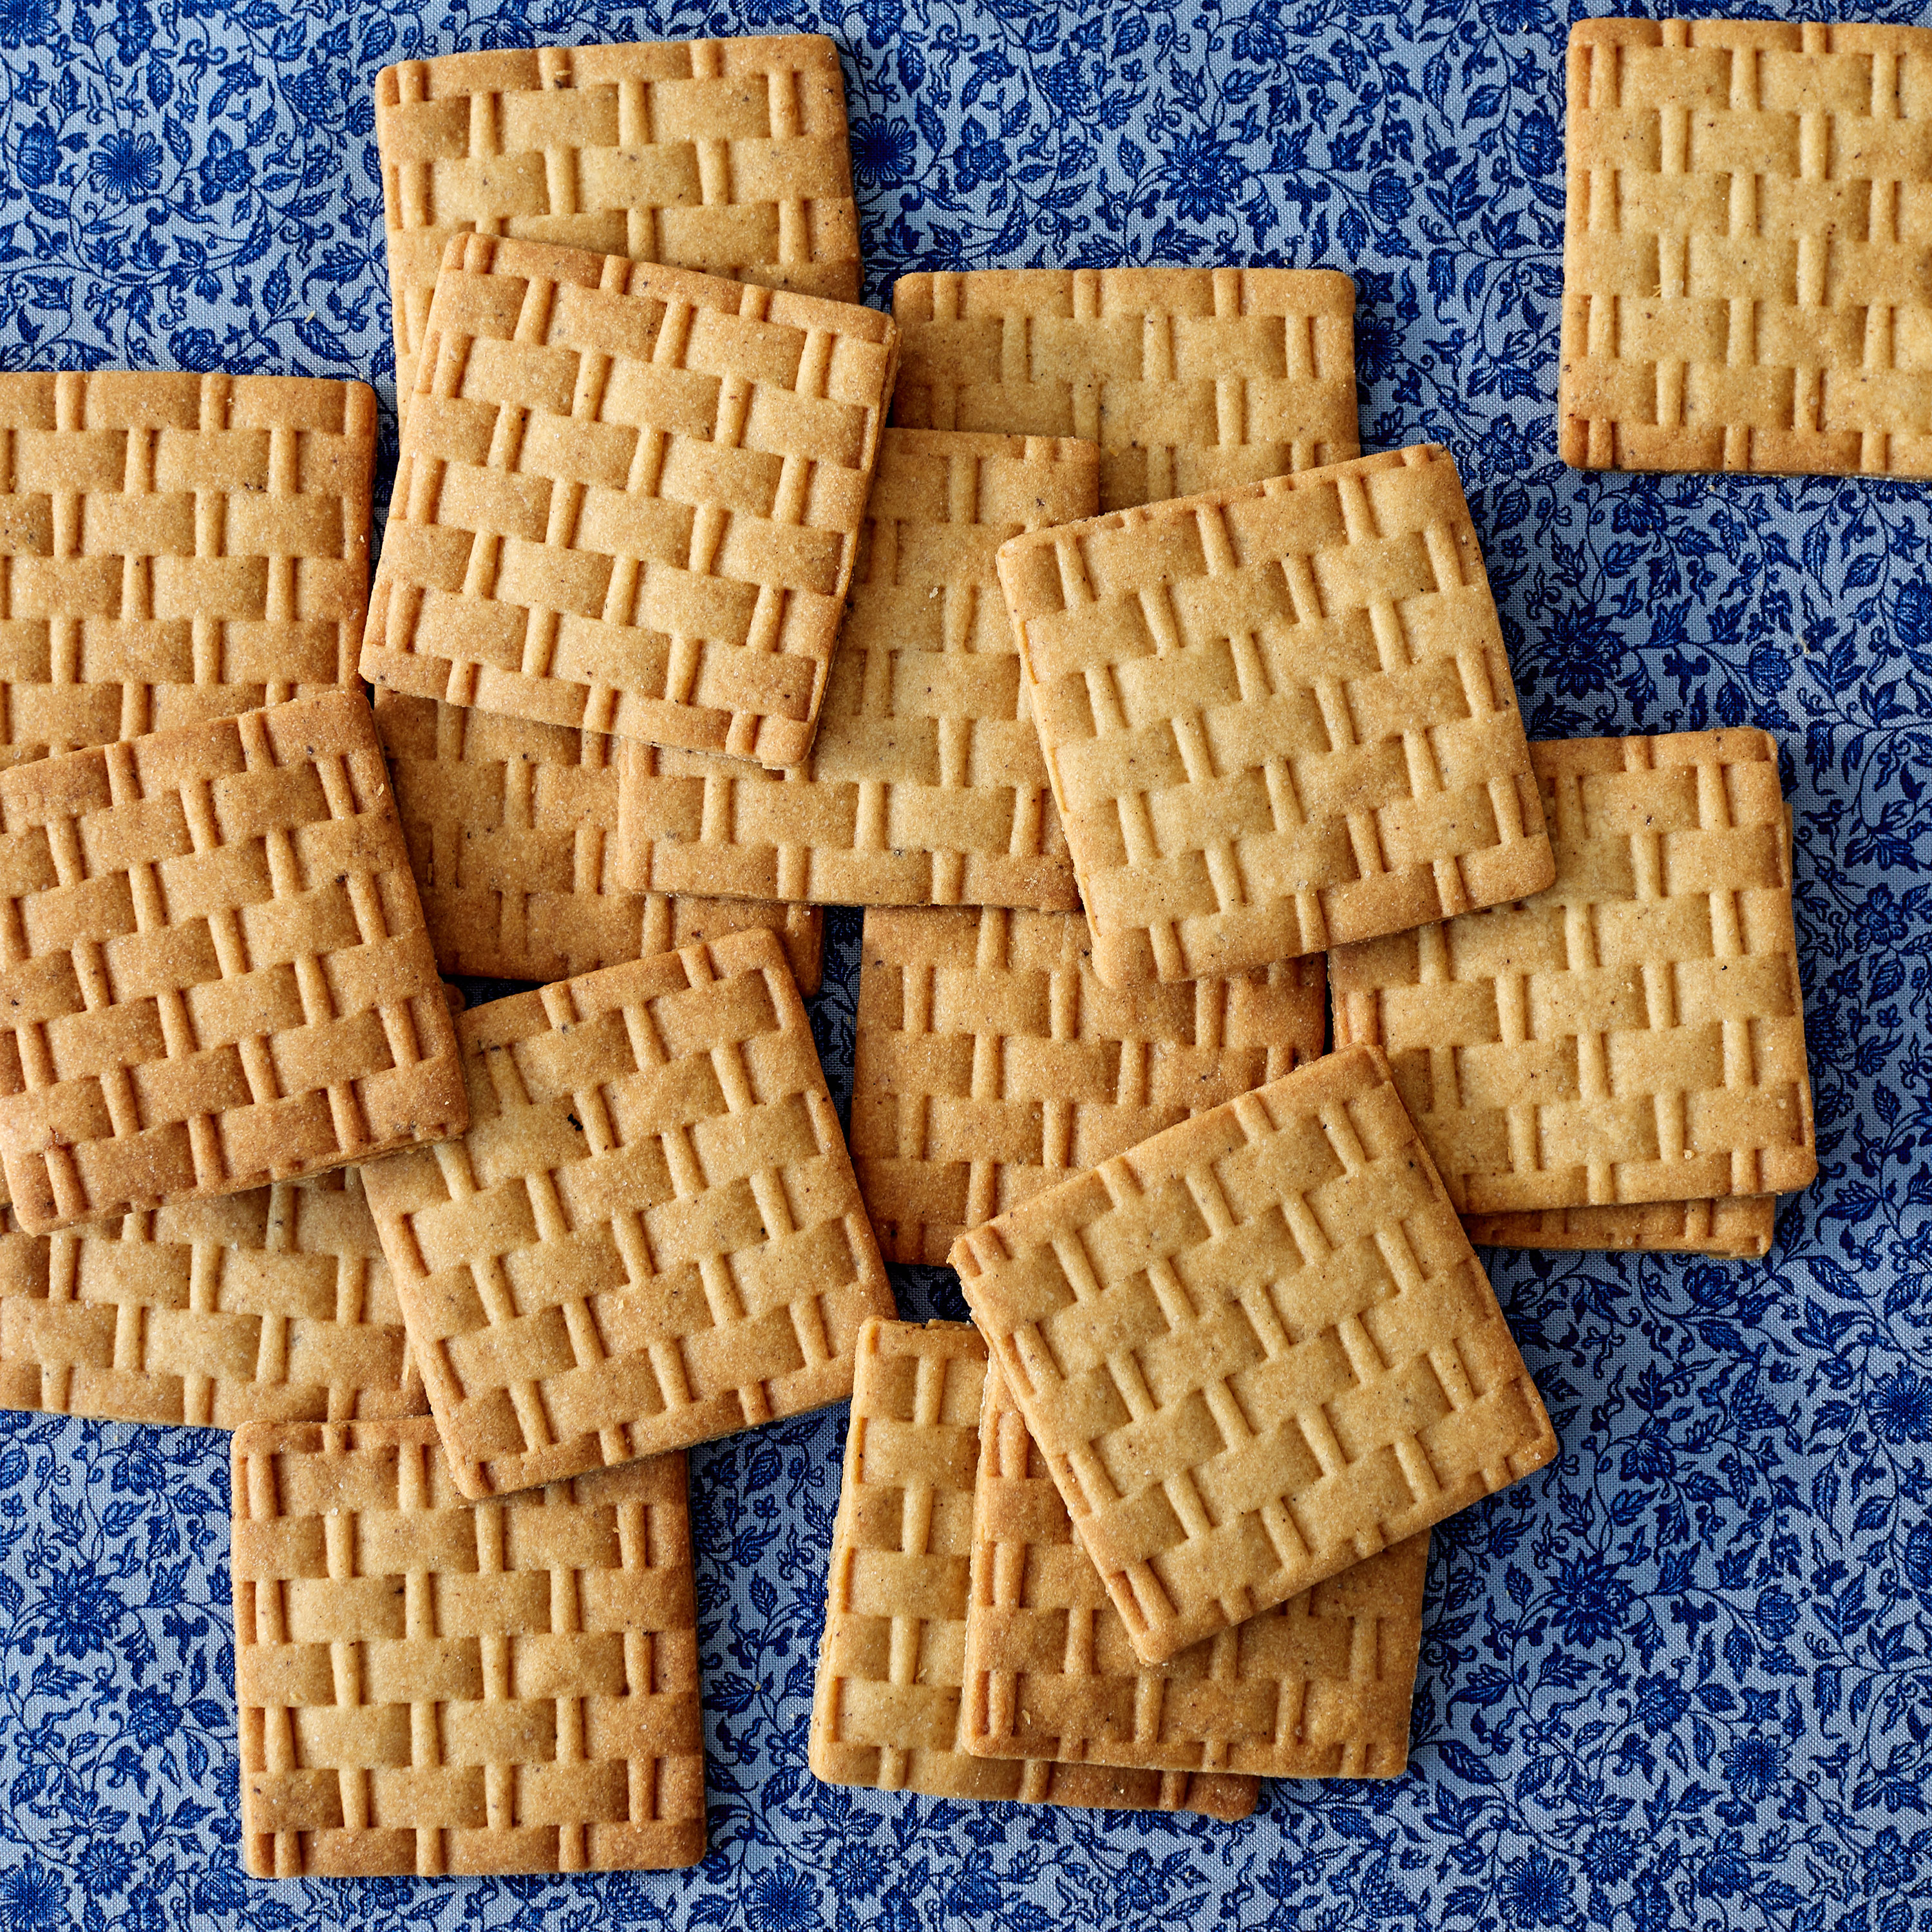 Basket-Weave Brown-Butter Cookies That Are Almost Too Beautiful to Eat